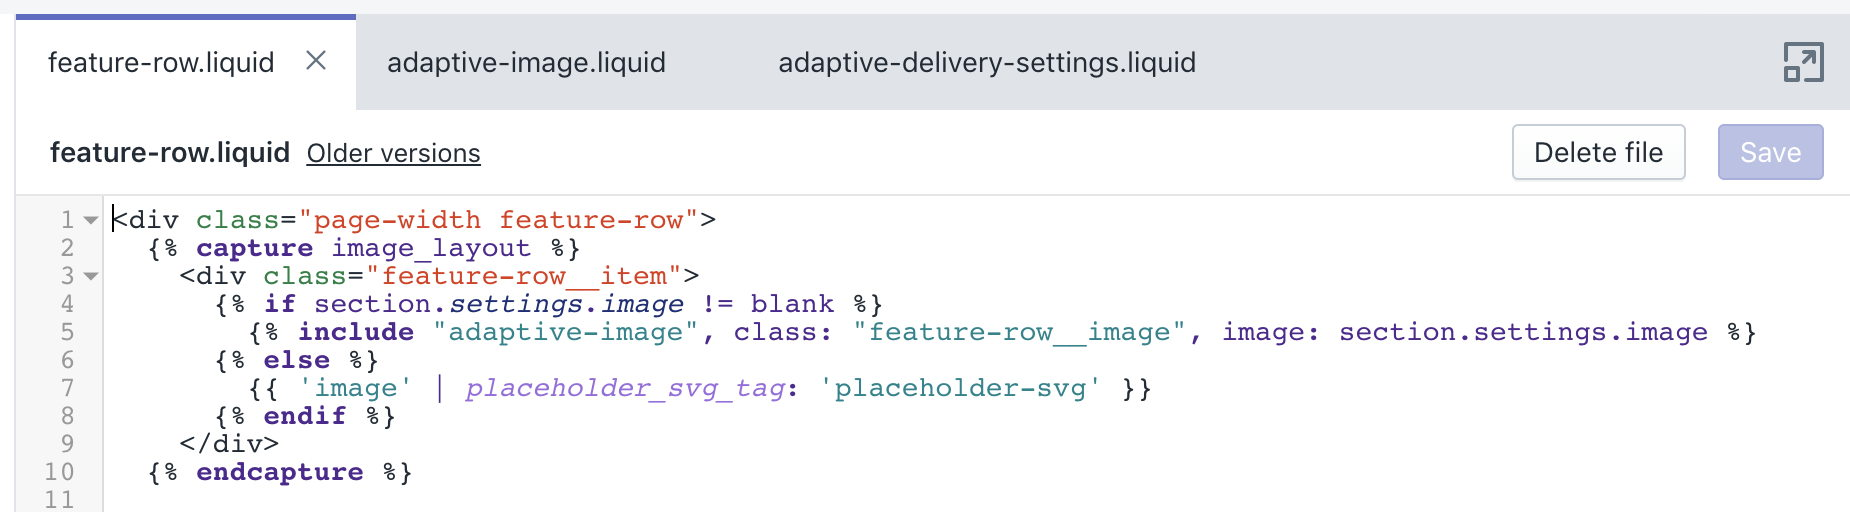 Shopify Adaptive Delivery integration with one line of code